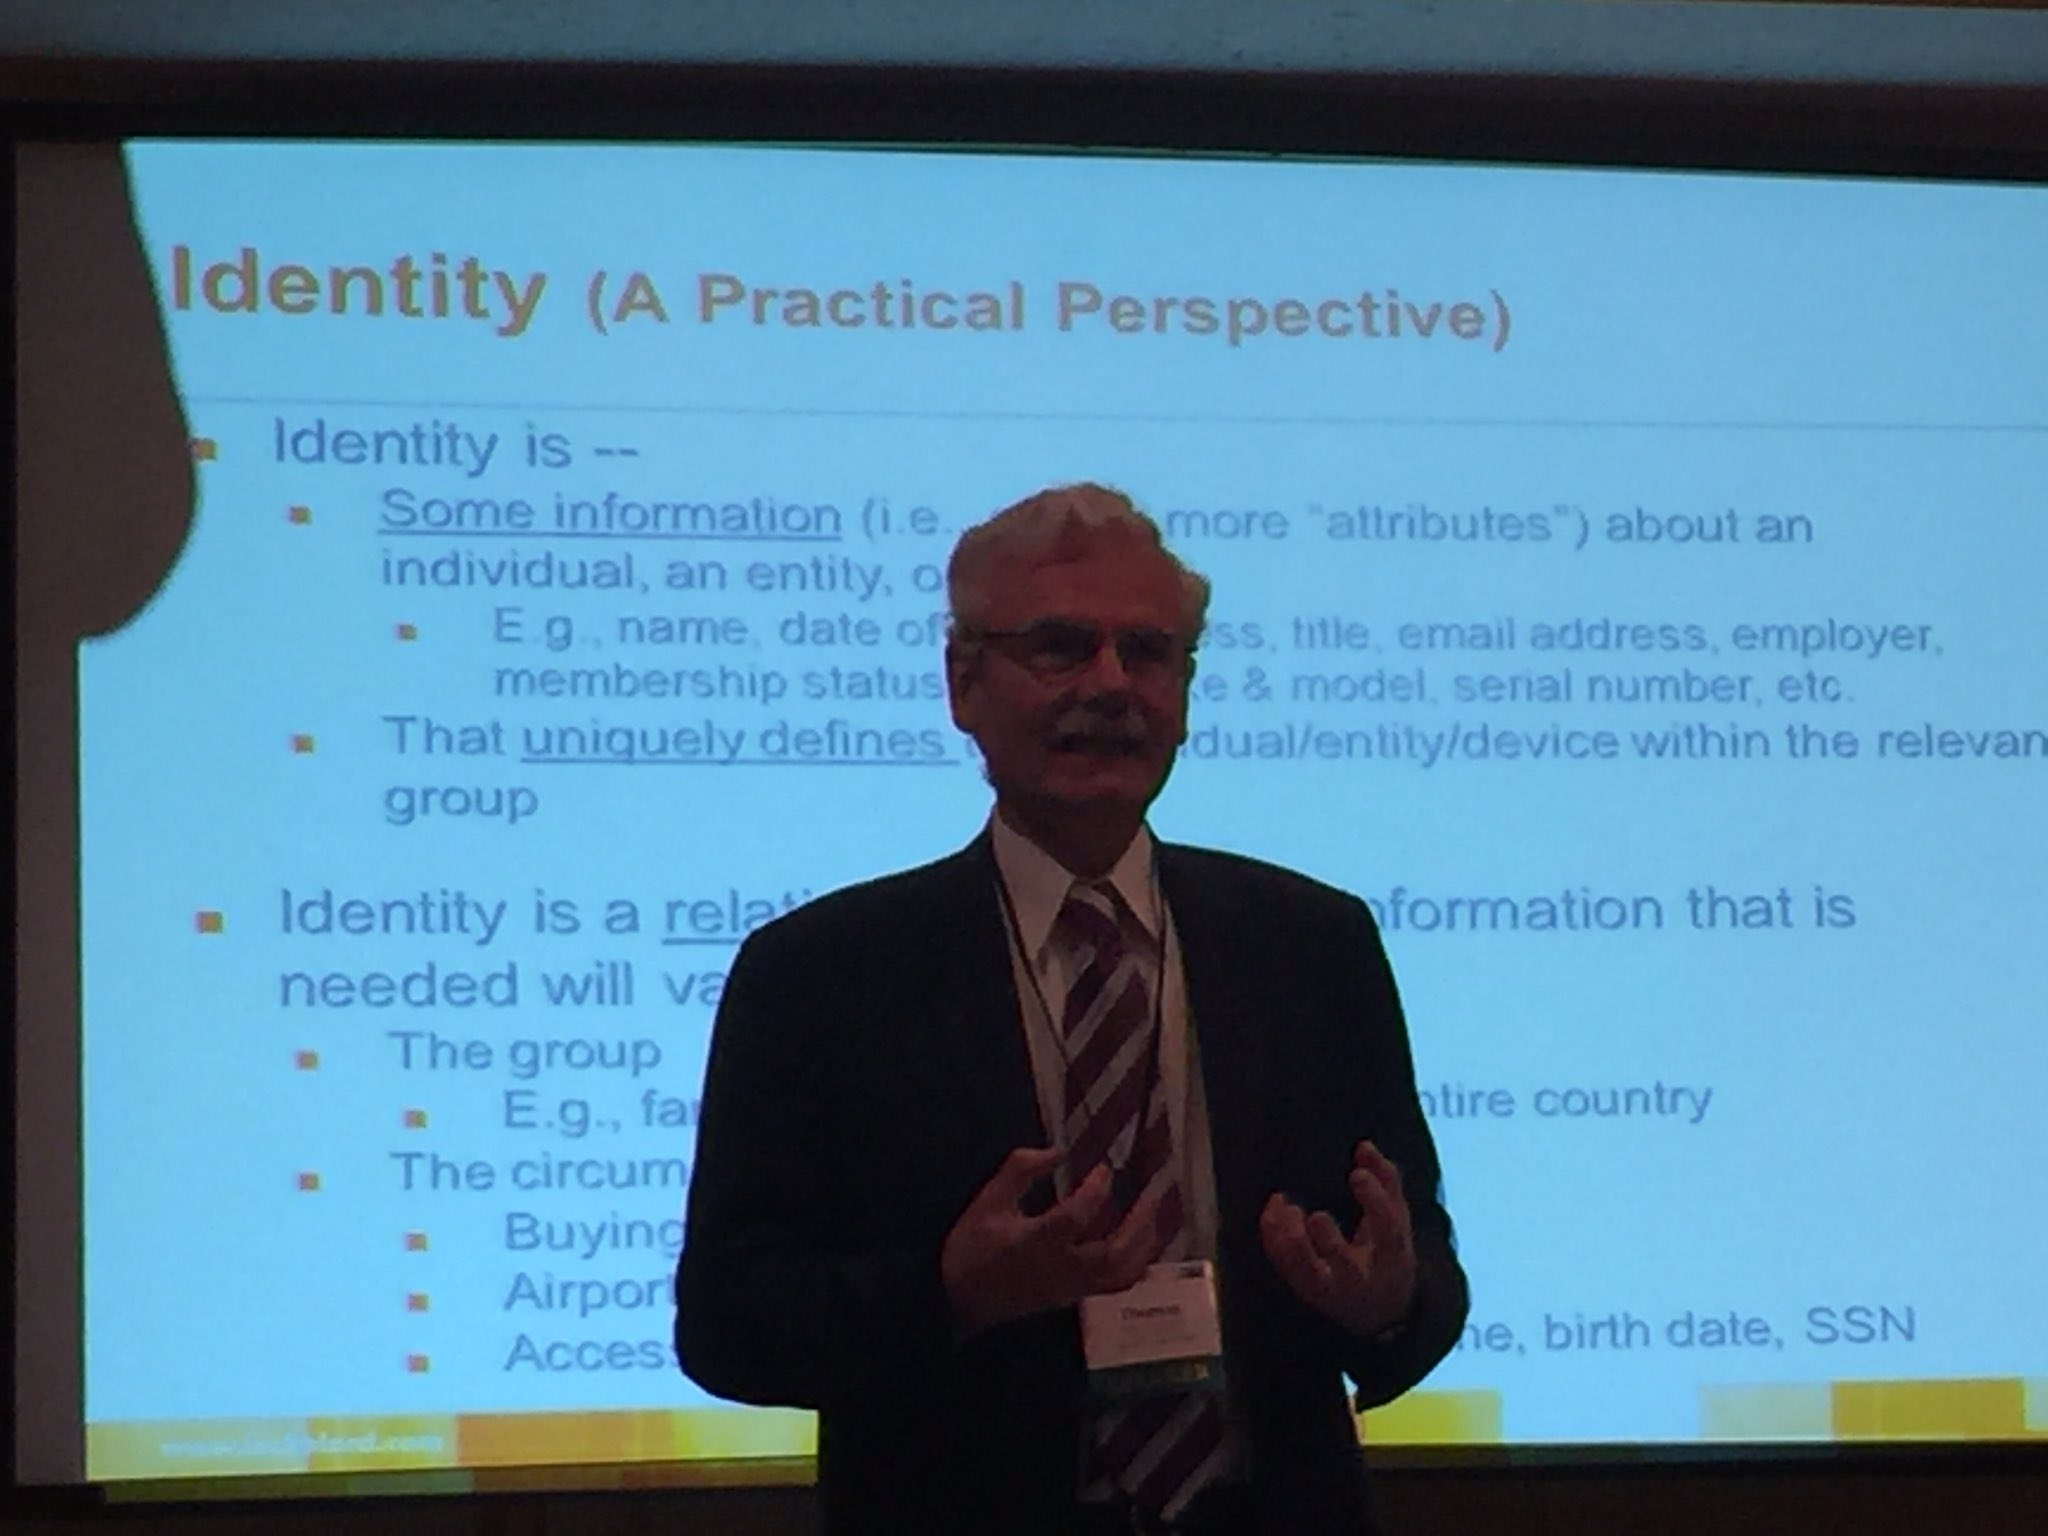 EU is all about #GDPR, whereas US talks about #IdM - in the end, it is all about identity management and trust @itechlaw_assn #ITLchicago https://t.co/KMmC5BUOAD